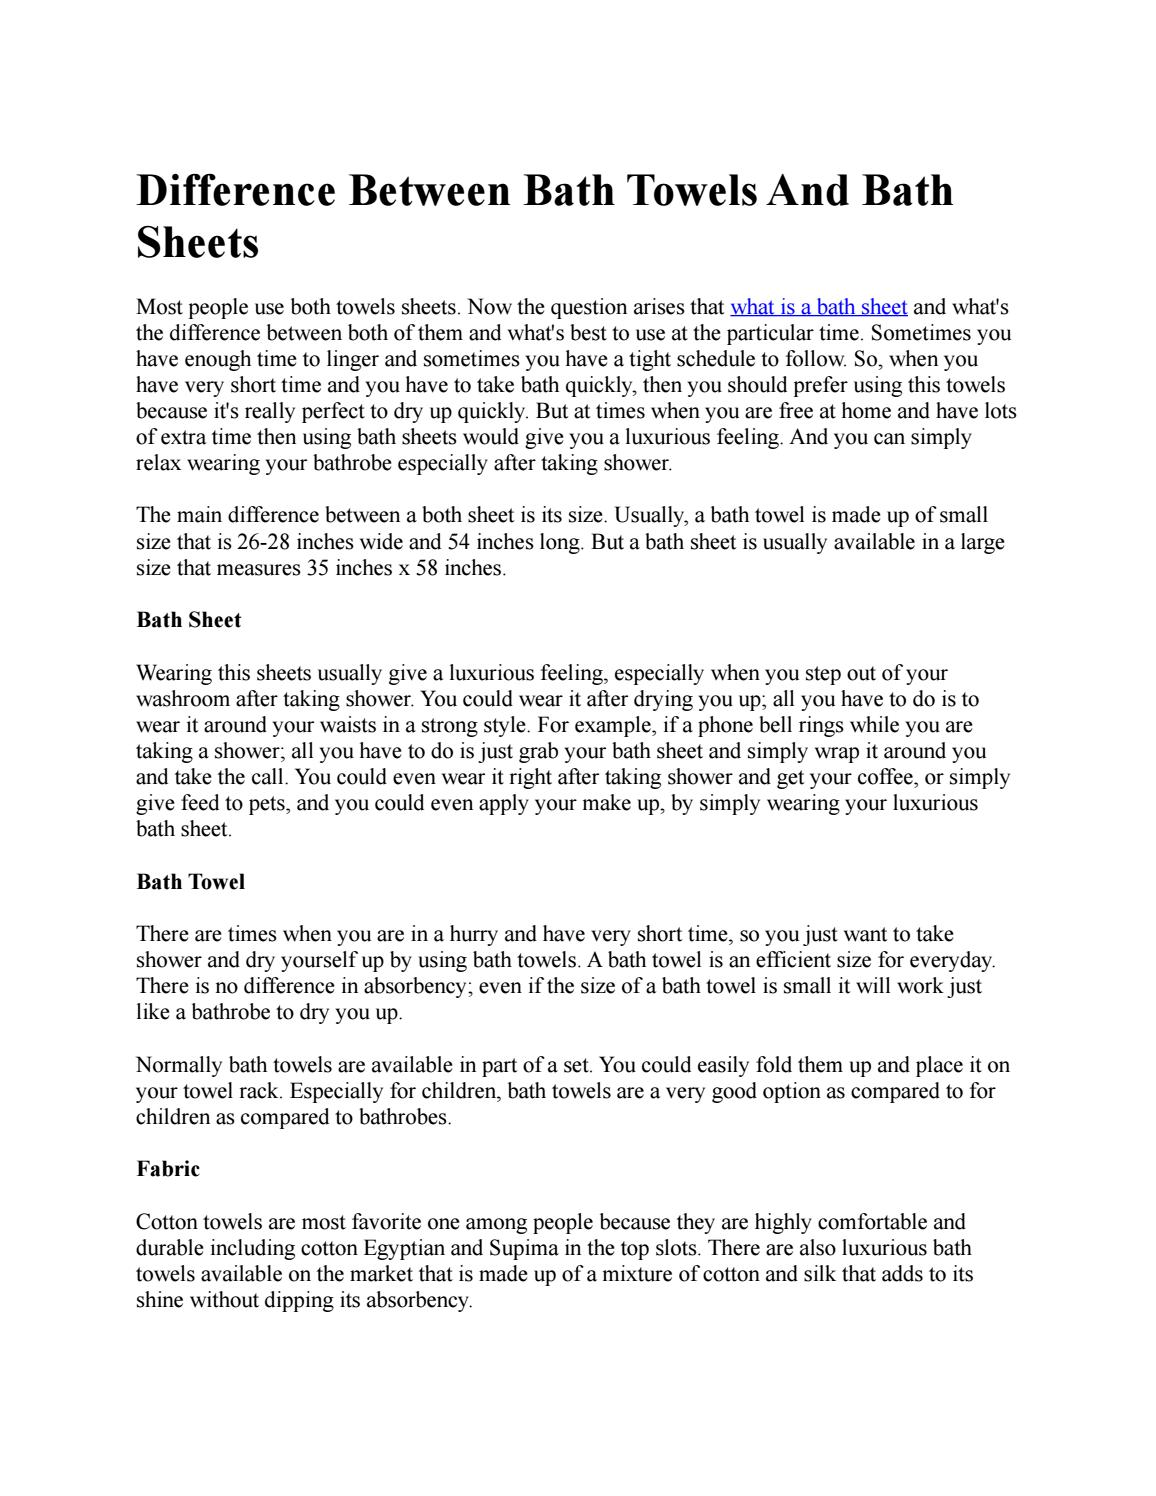 Difference Between Bath Towels And Bath Sheets By Joe Smith Issuu